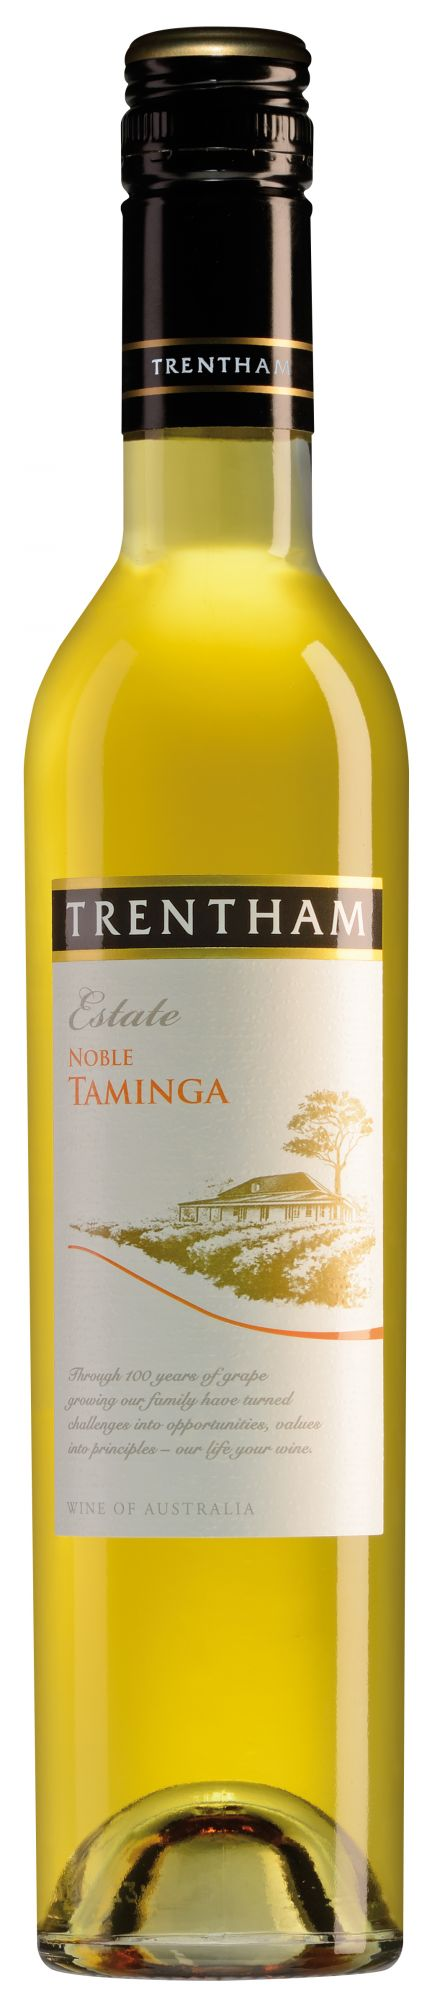 Trentham Estate Murray Darling Taminga